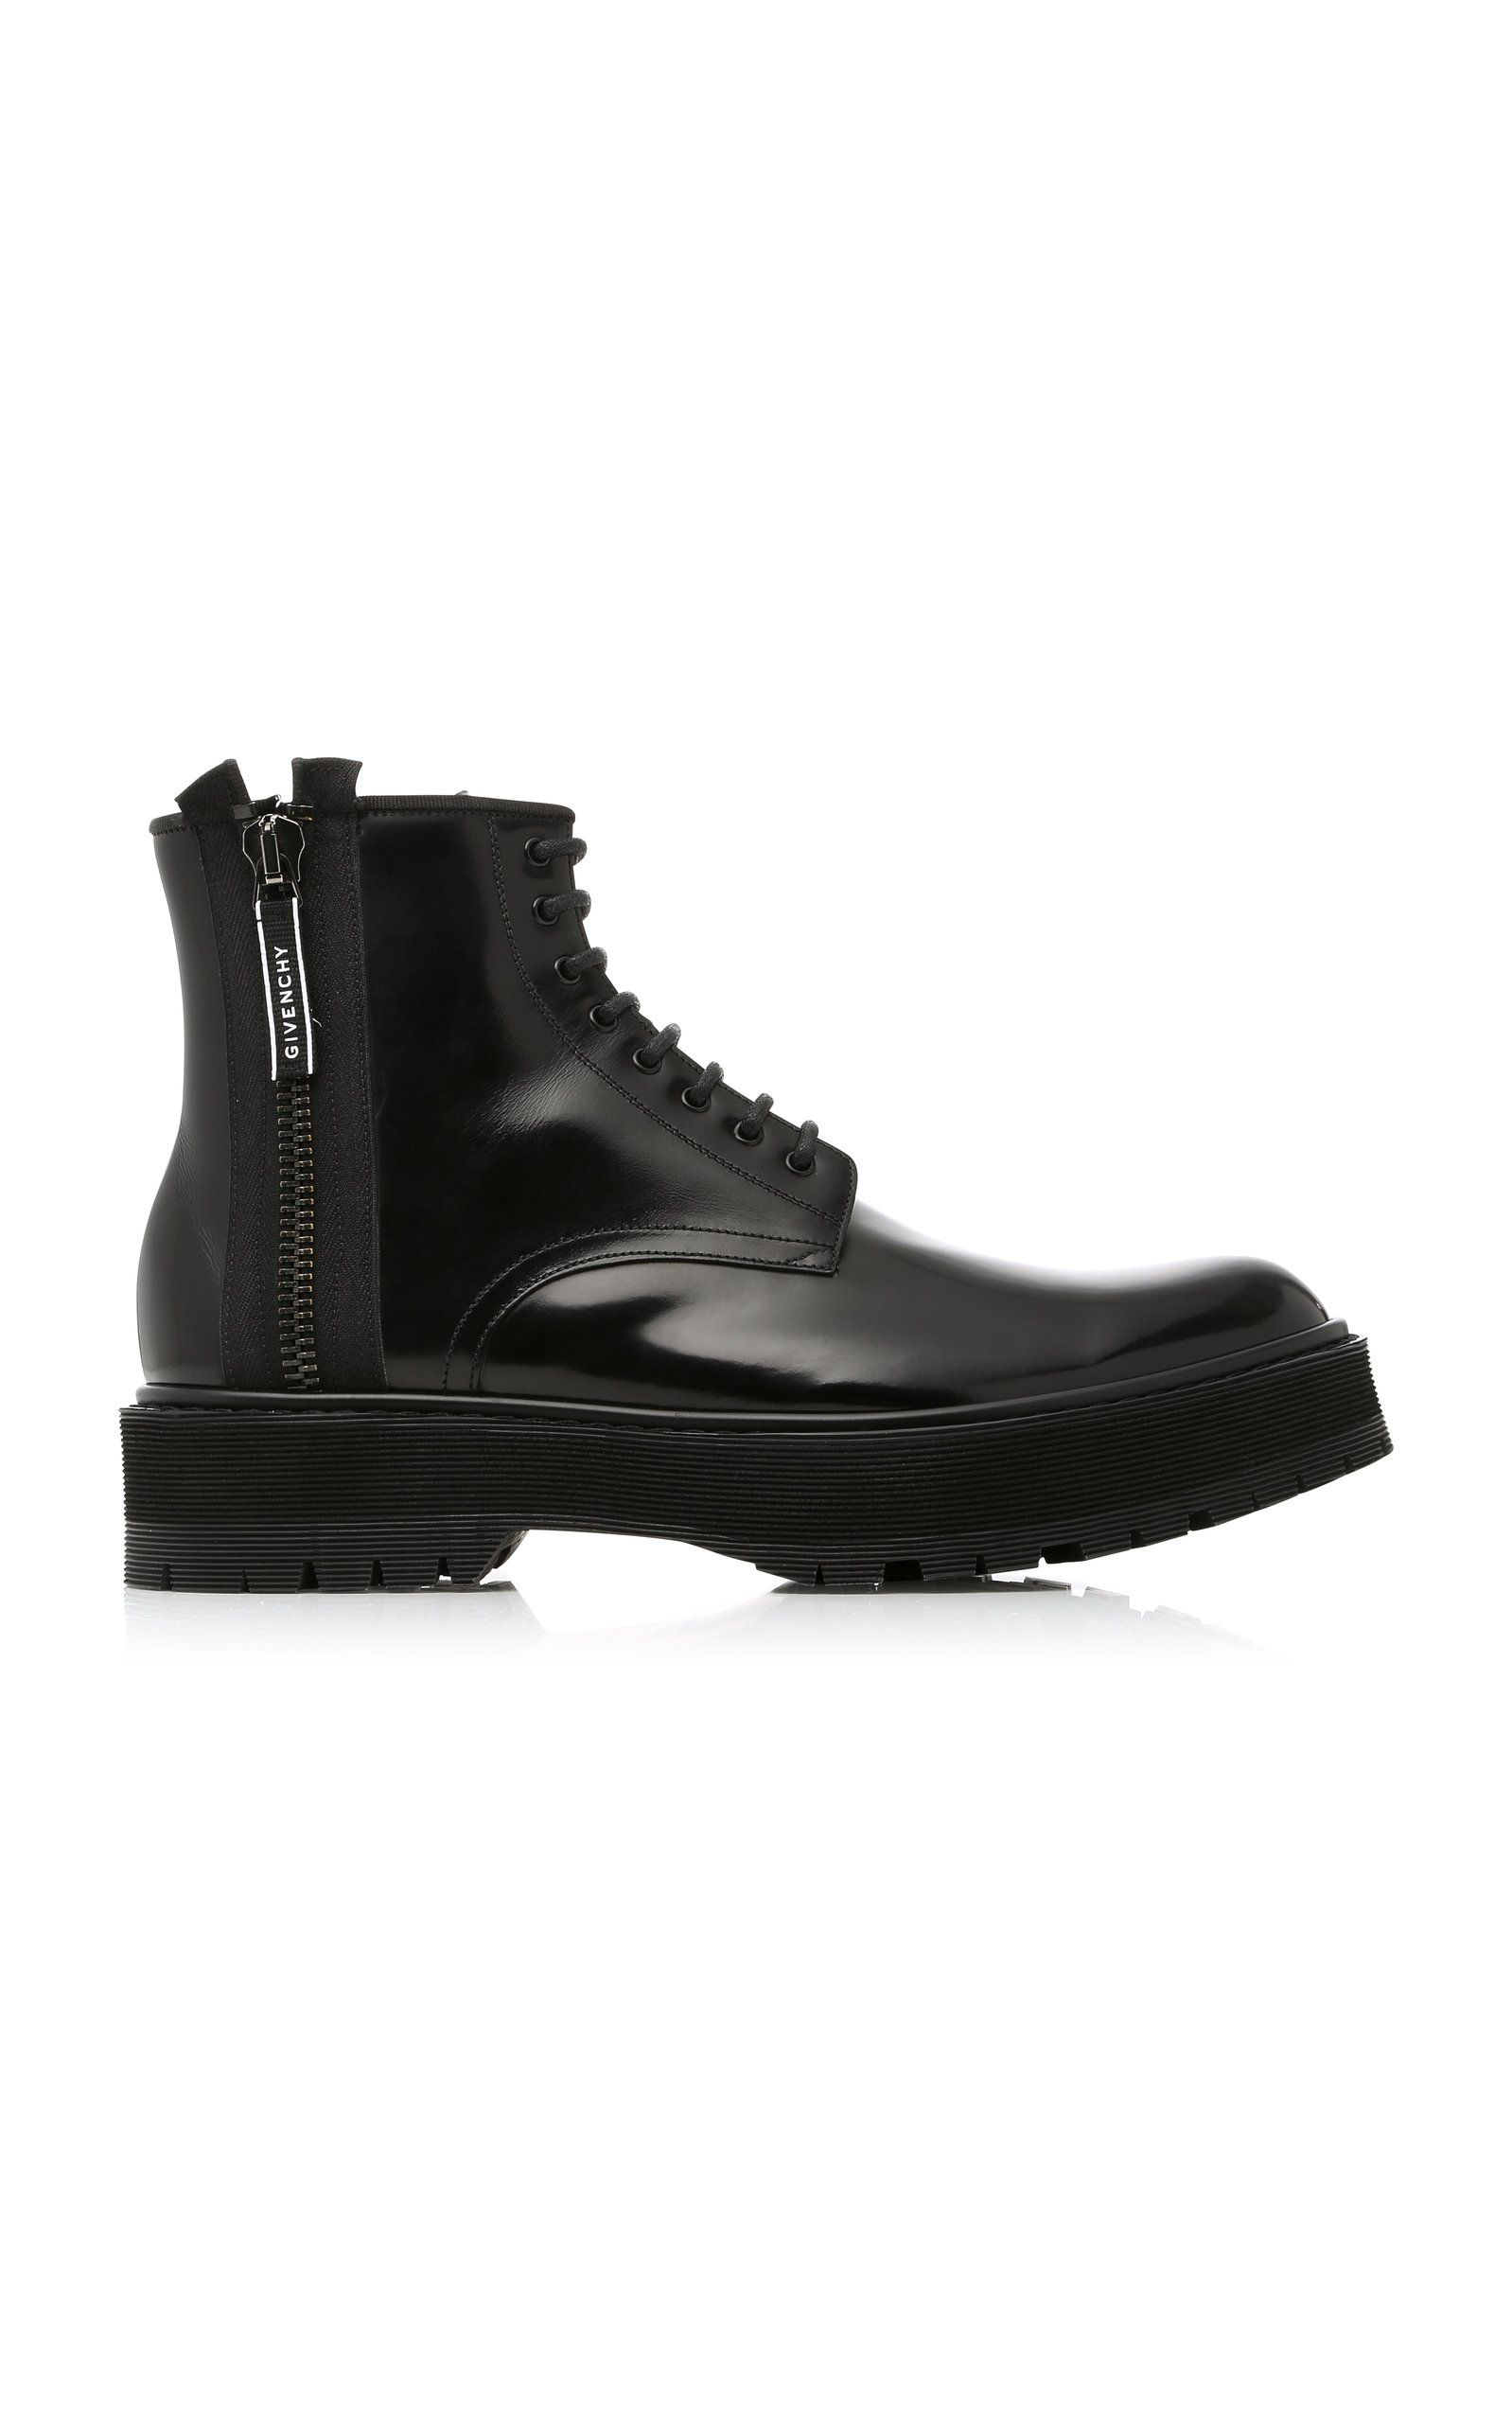 ea8c955ff87 Givenchy Camden Rugged Boot in 2019 | Male Fashion | Shoe boots ...